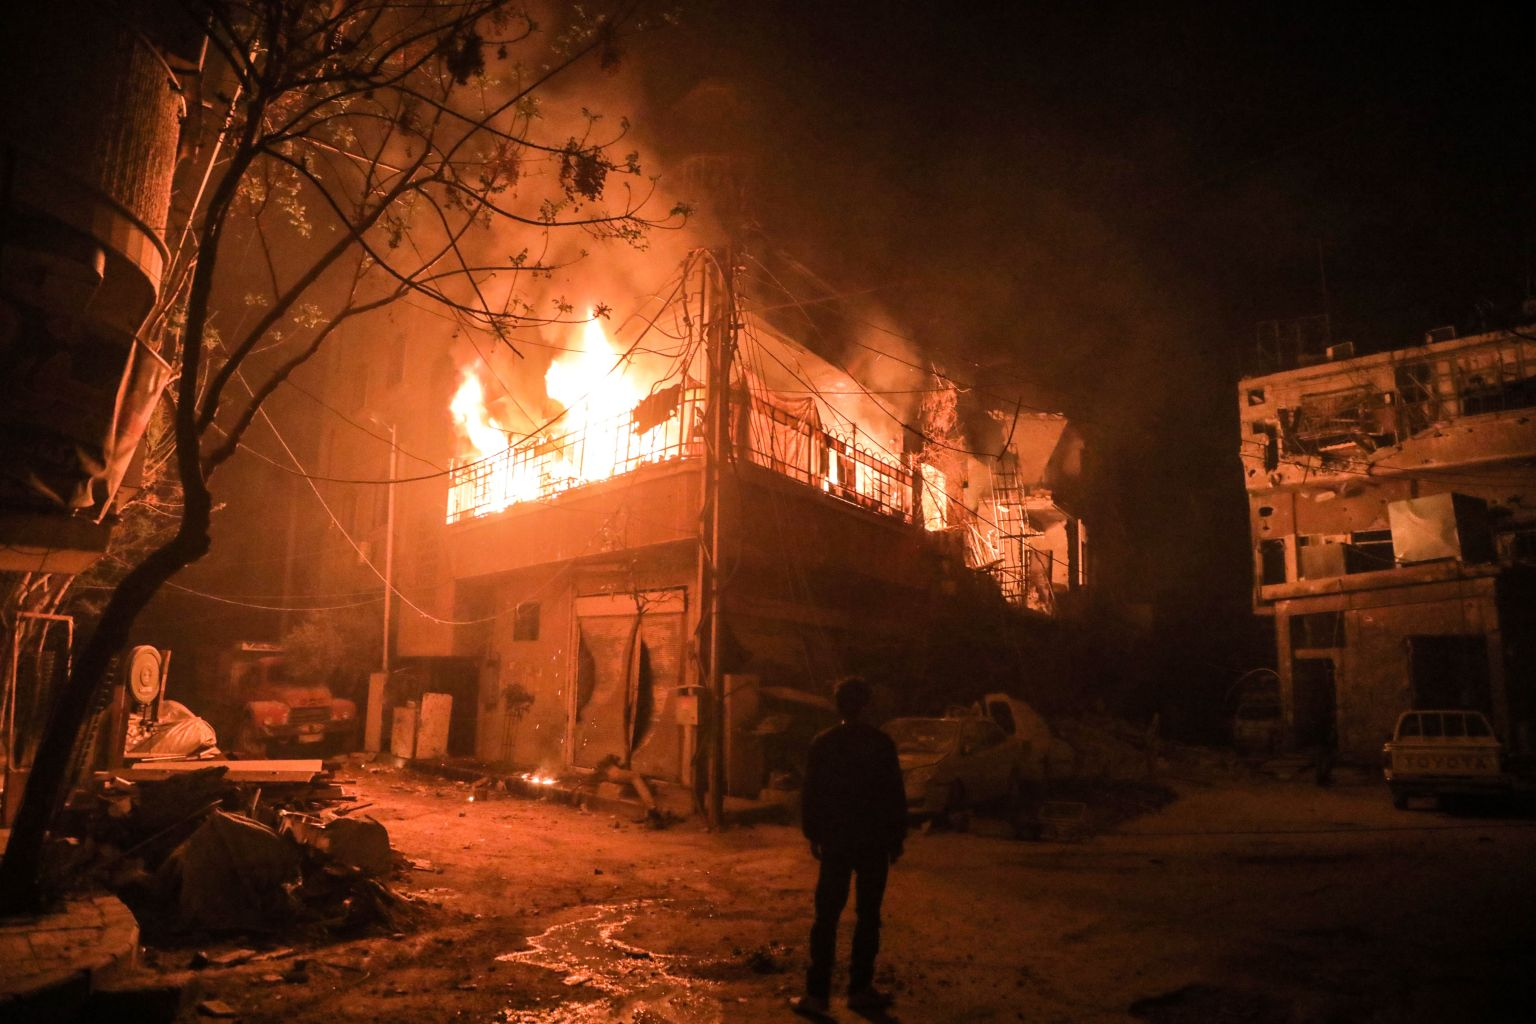 TOPSHOT - A picture taken early on March 23, 2018 shows a man standing looking at flames erupting in a building following regime bombardment in Douma, one of the few remaining rebel-held pockets in Eastern Ghouta on the outskirts of the capital Damascus. / AFP PHOTO / HAMZA AL-AJWEH        (Photo credit should read HAMZA AL-AJWEH/AFP/Getty Images)